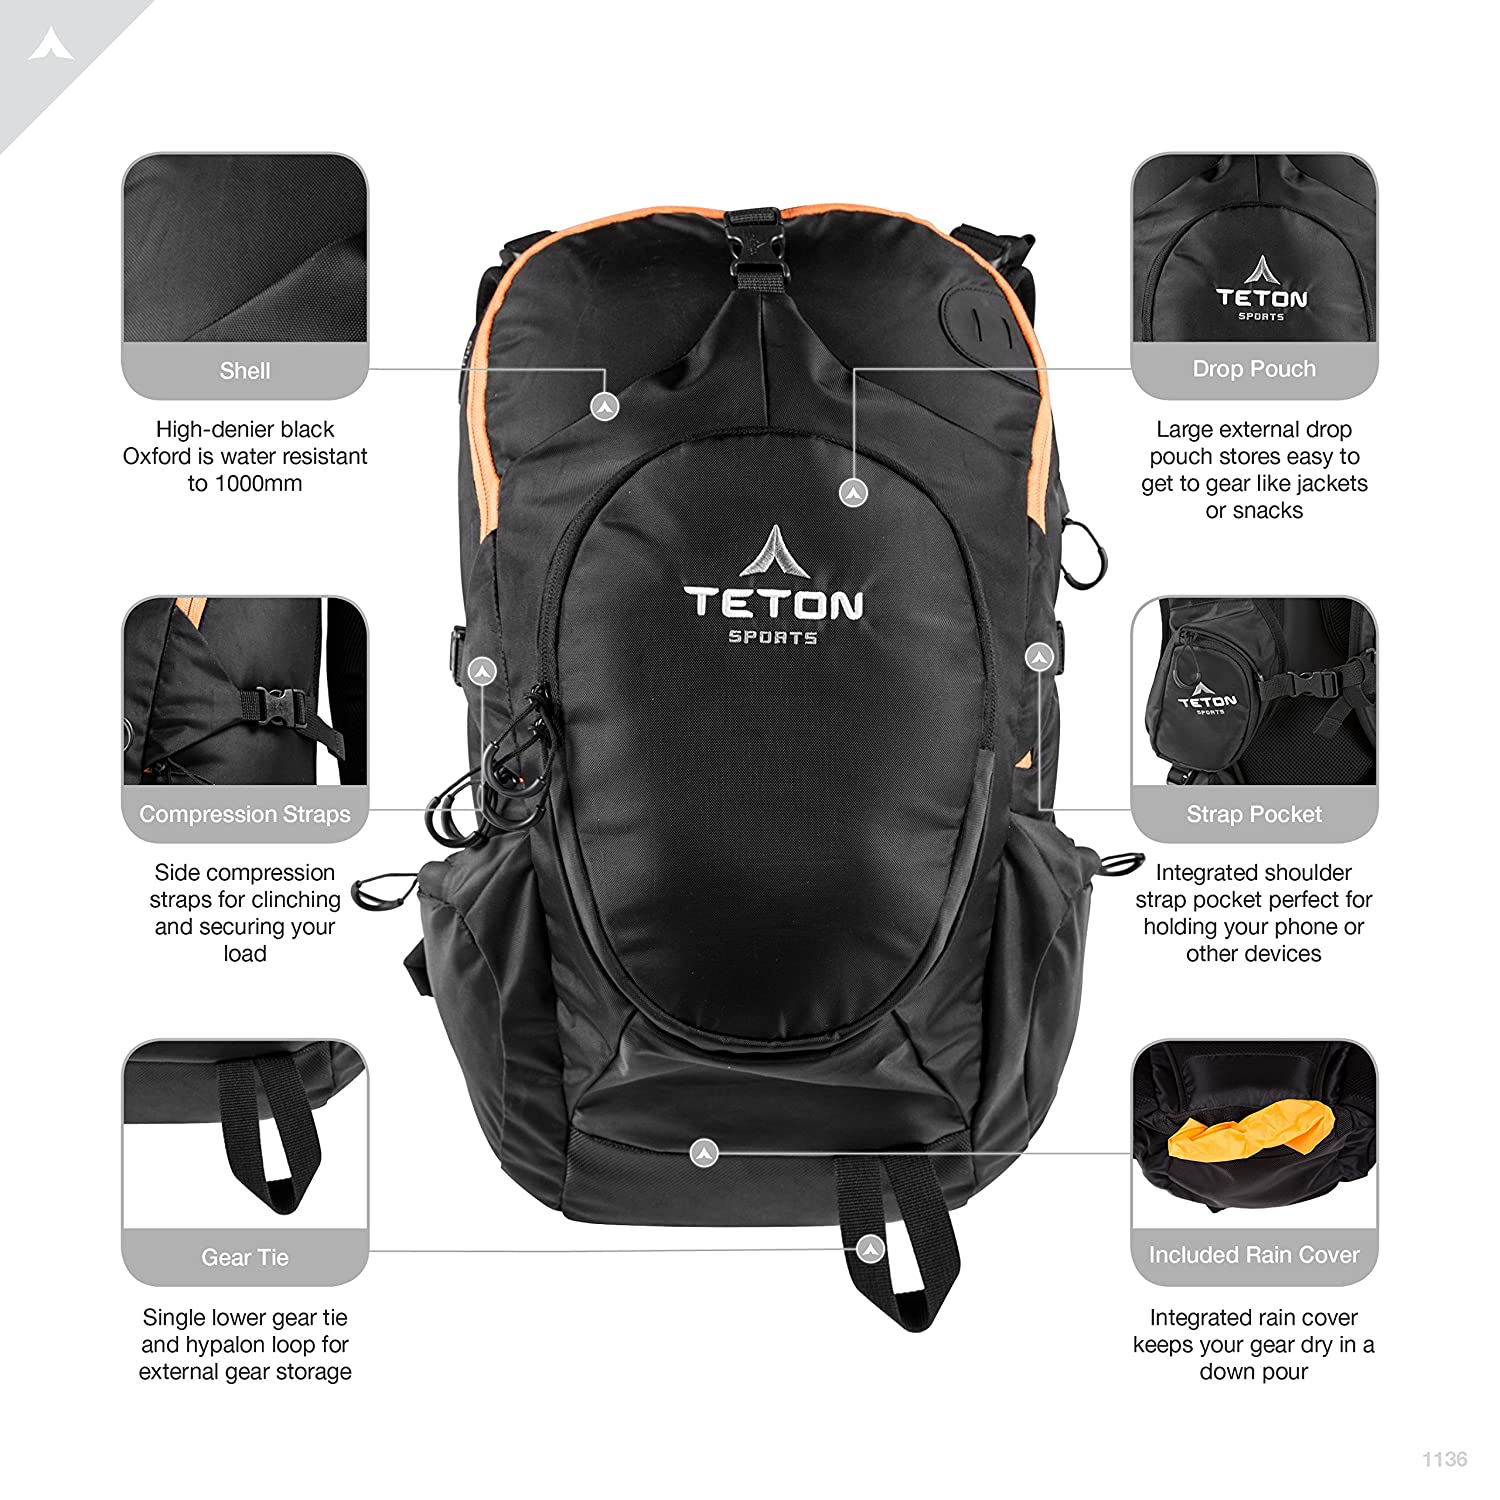 TETON Sports Rock 1800 Backpack; Lightweight Daypack; Hiking Backpack for Camping and Outdoor Sports; Sewn-in Rain Cover; Be Prepared for Those Unplanned Trips 1136 Travel Hunting